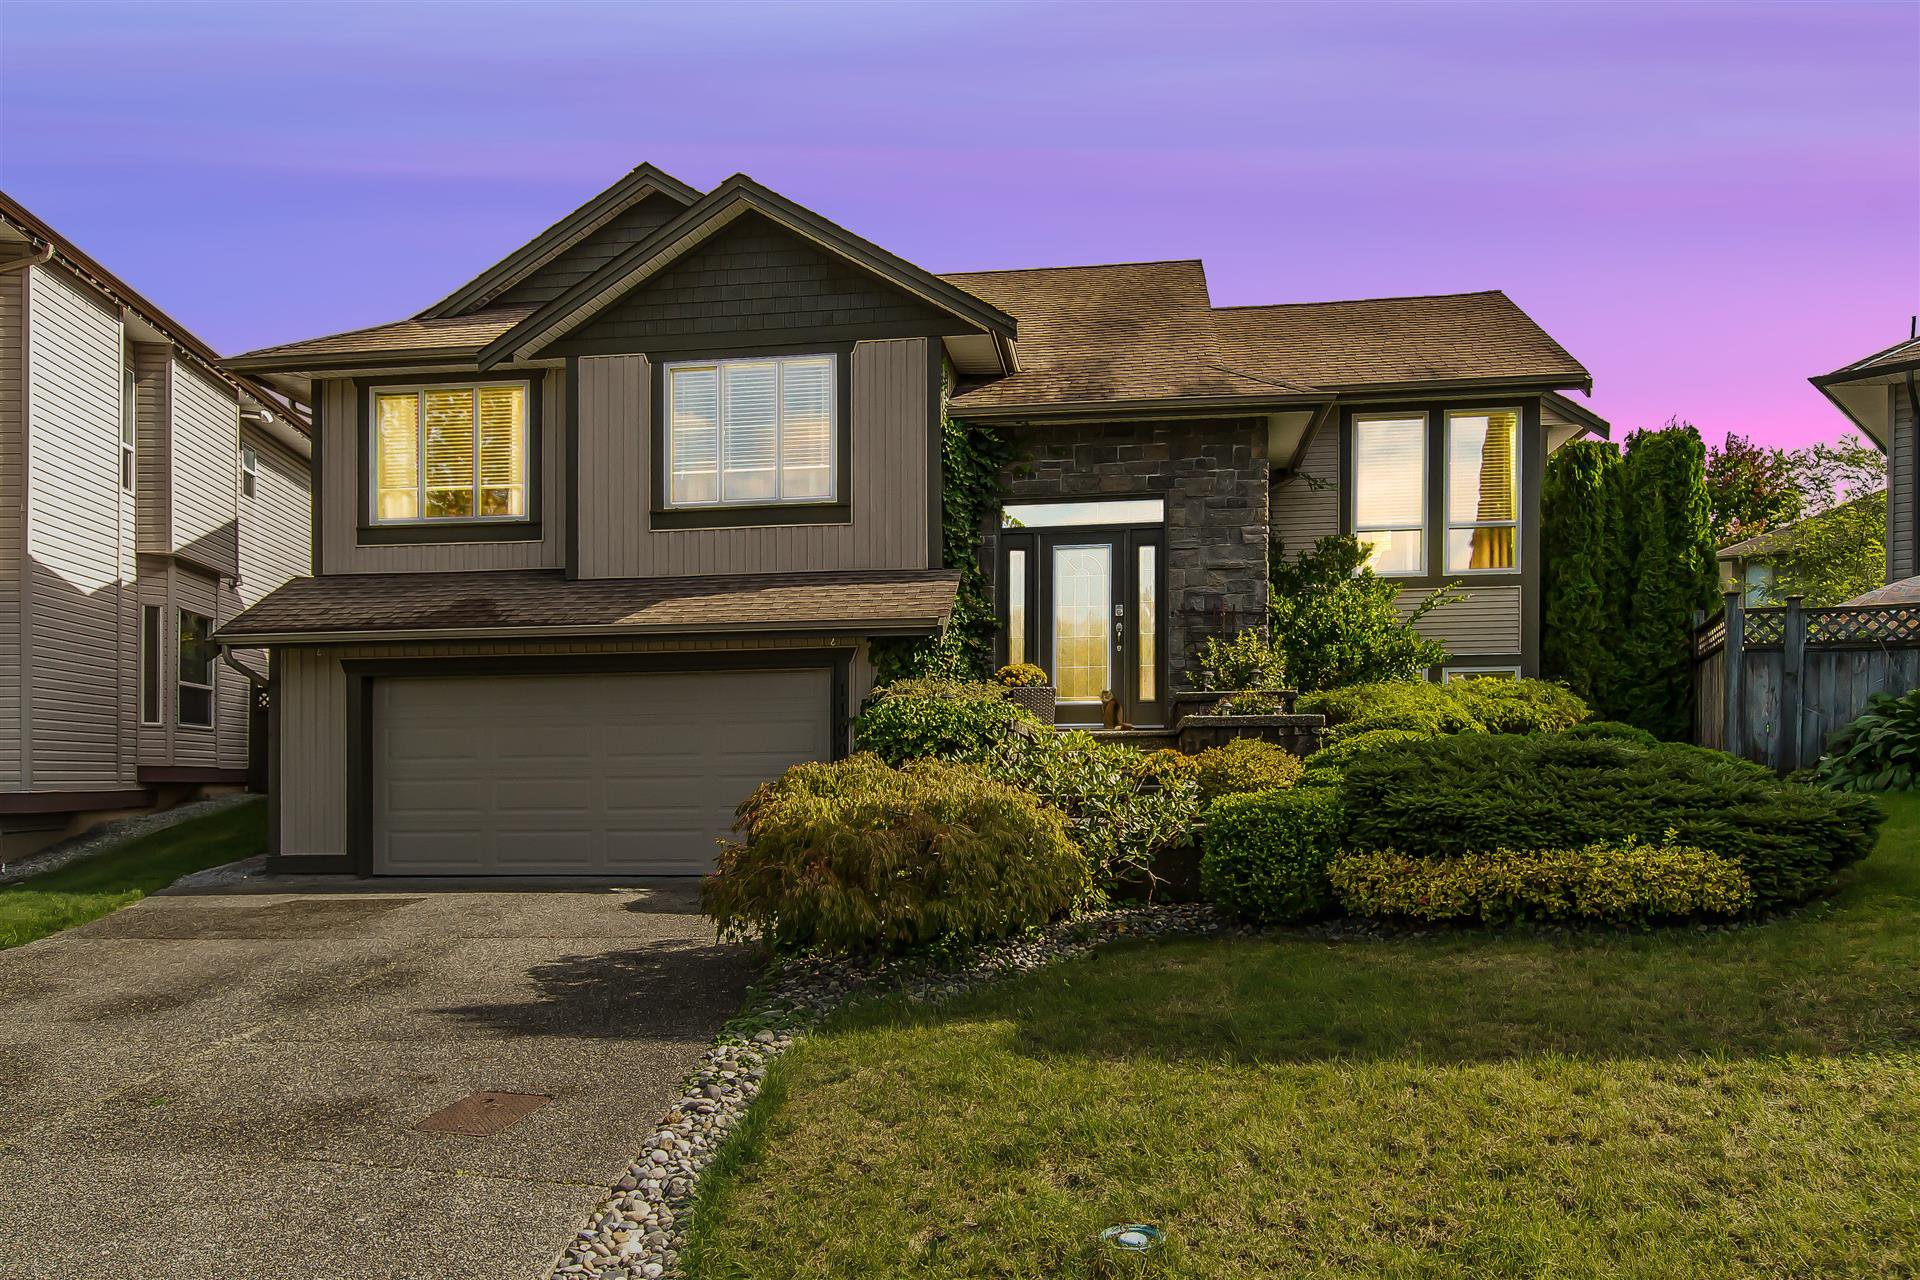 Main Photo: 11008 237B Street in Maple Ridge: Cottonwood MR House for sale : MLS®# R2407120